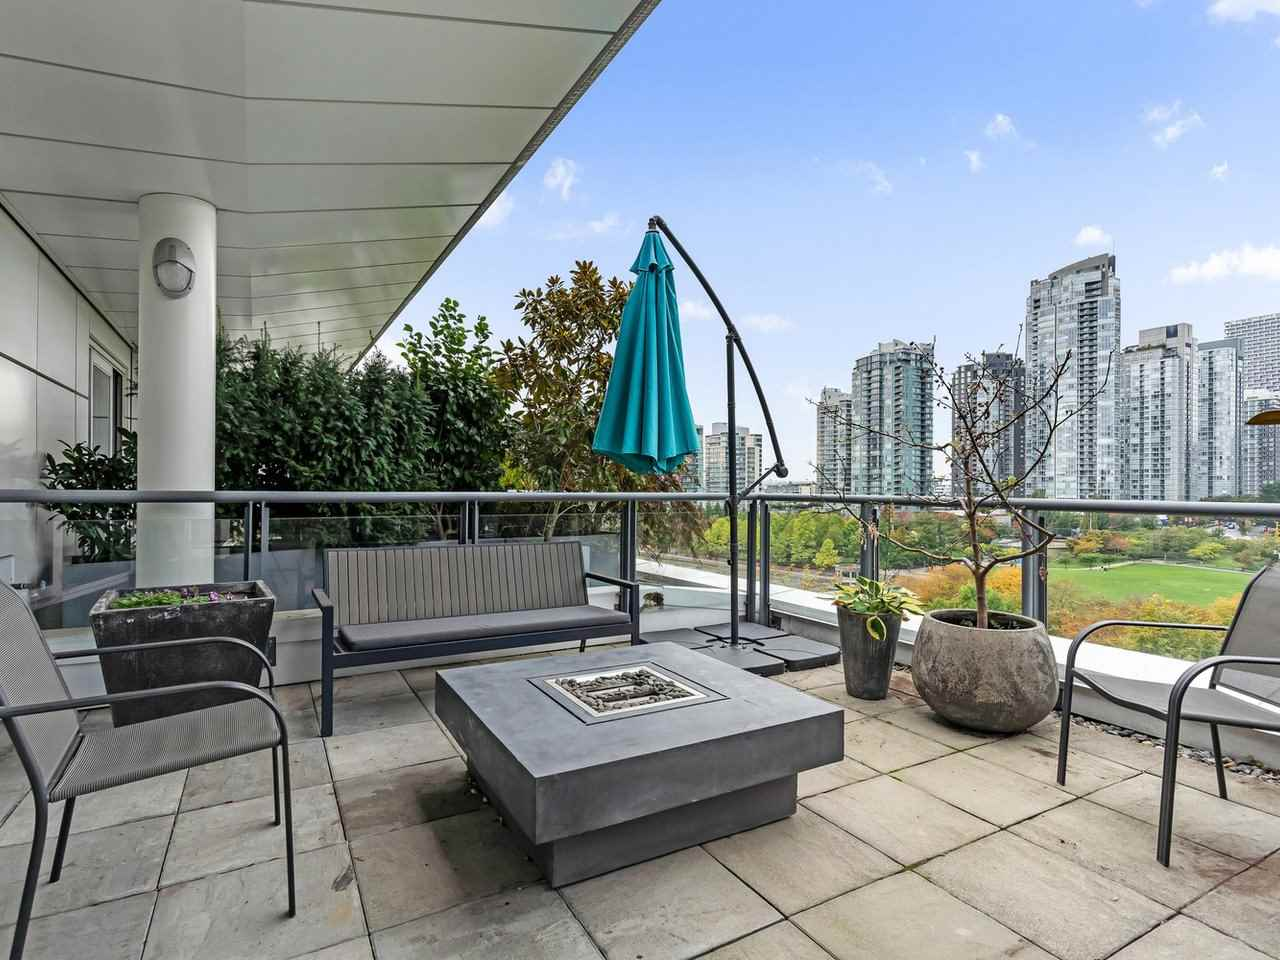 801 1383 MARINASIDE CRESCENT - Yaletown Apartment/Condo for sale, 3 Bedrooms (R2504775) - #1